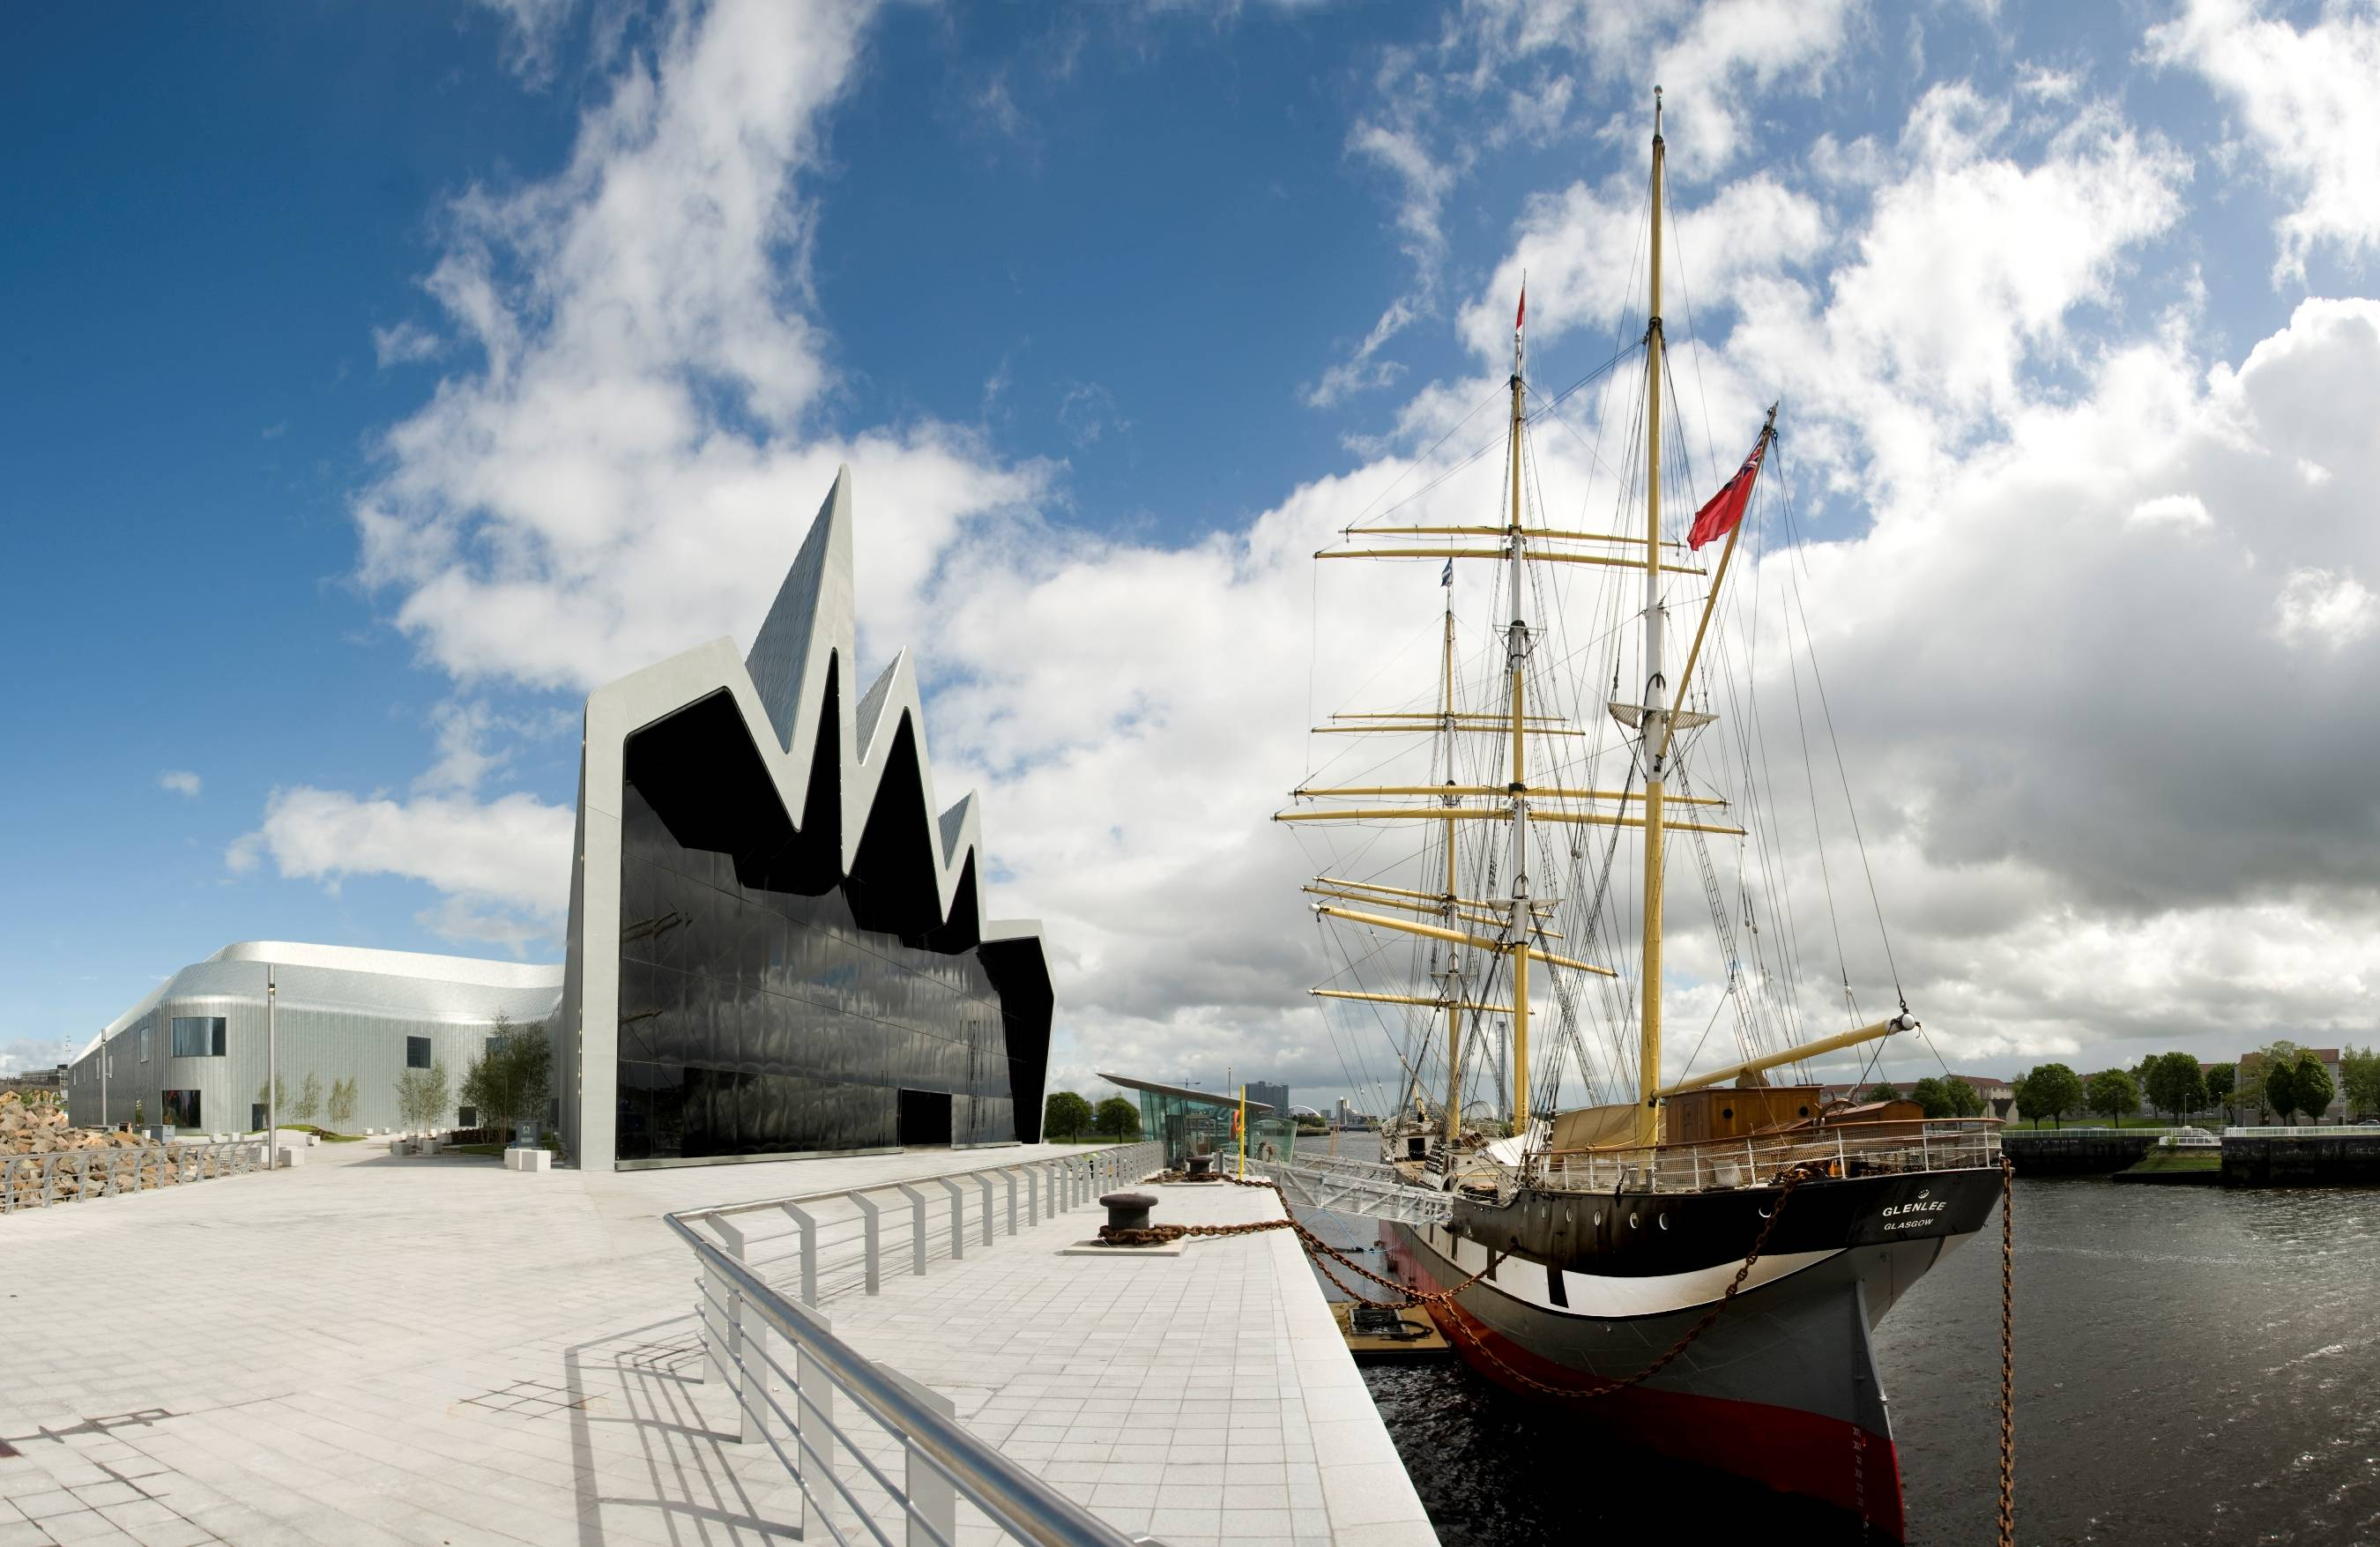 Exhibits at the Riverside Museum on the banks of the Clyde River in Glasgow include a sailing ship permanently moored outside the museum. The museum, which is free to visit, was designed by renowned architect Zaha Hadid.